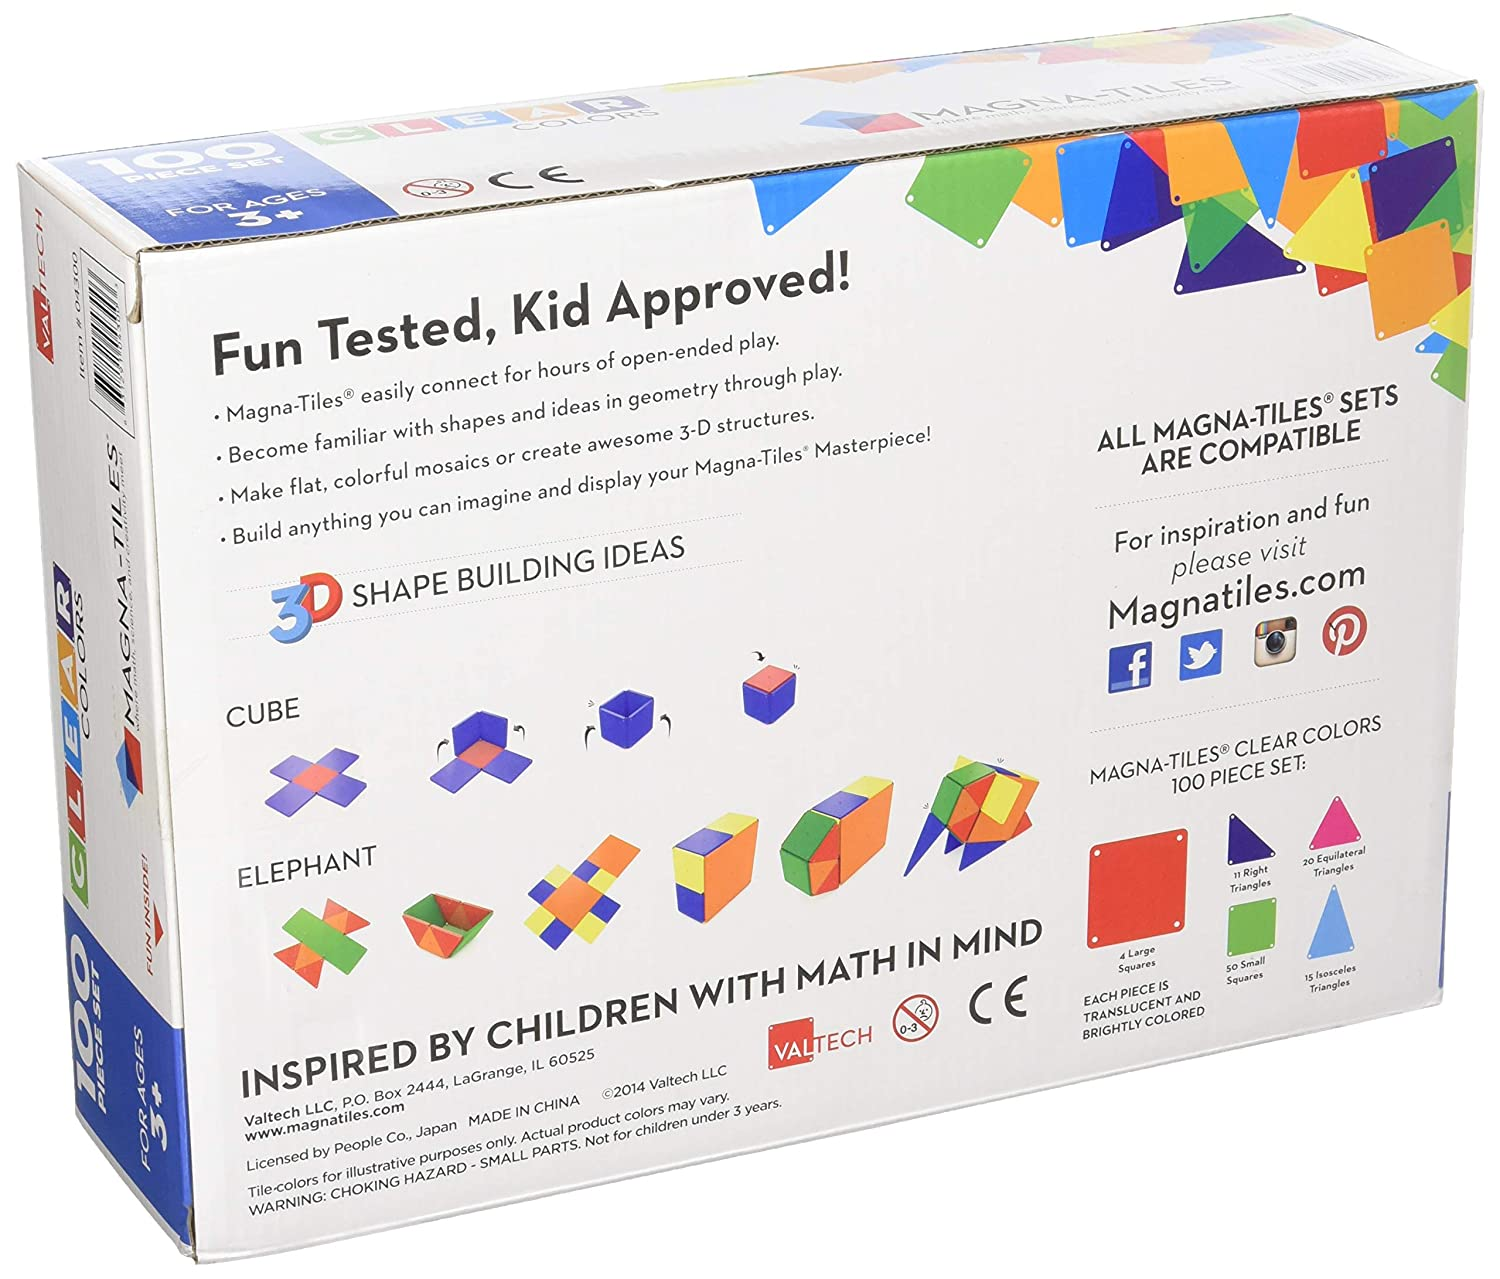 Amazon.com: Magna-Tiles 100-Piece Clear Colors Set – The Original,  Award-Winning Magnetic Building Tiles – Creativity and Educational – STEM  Approved: Toys ...